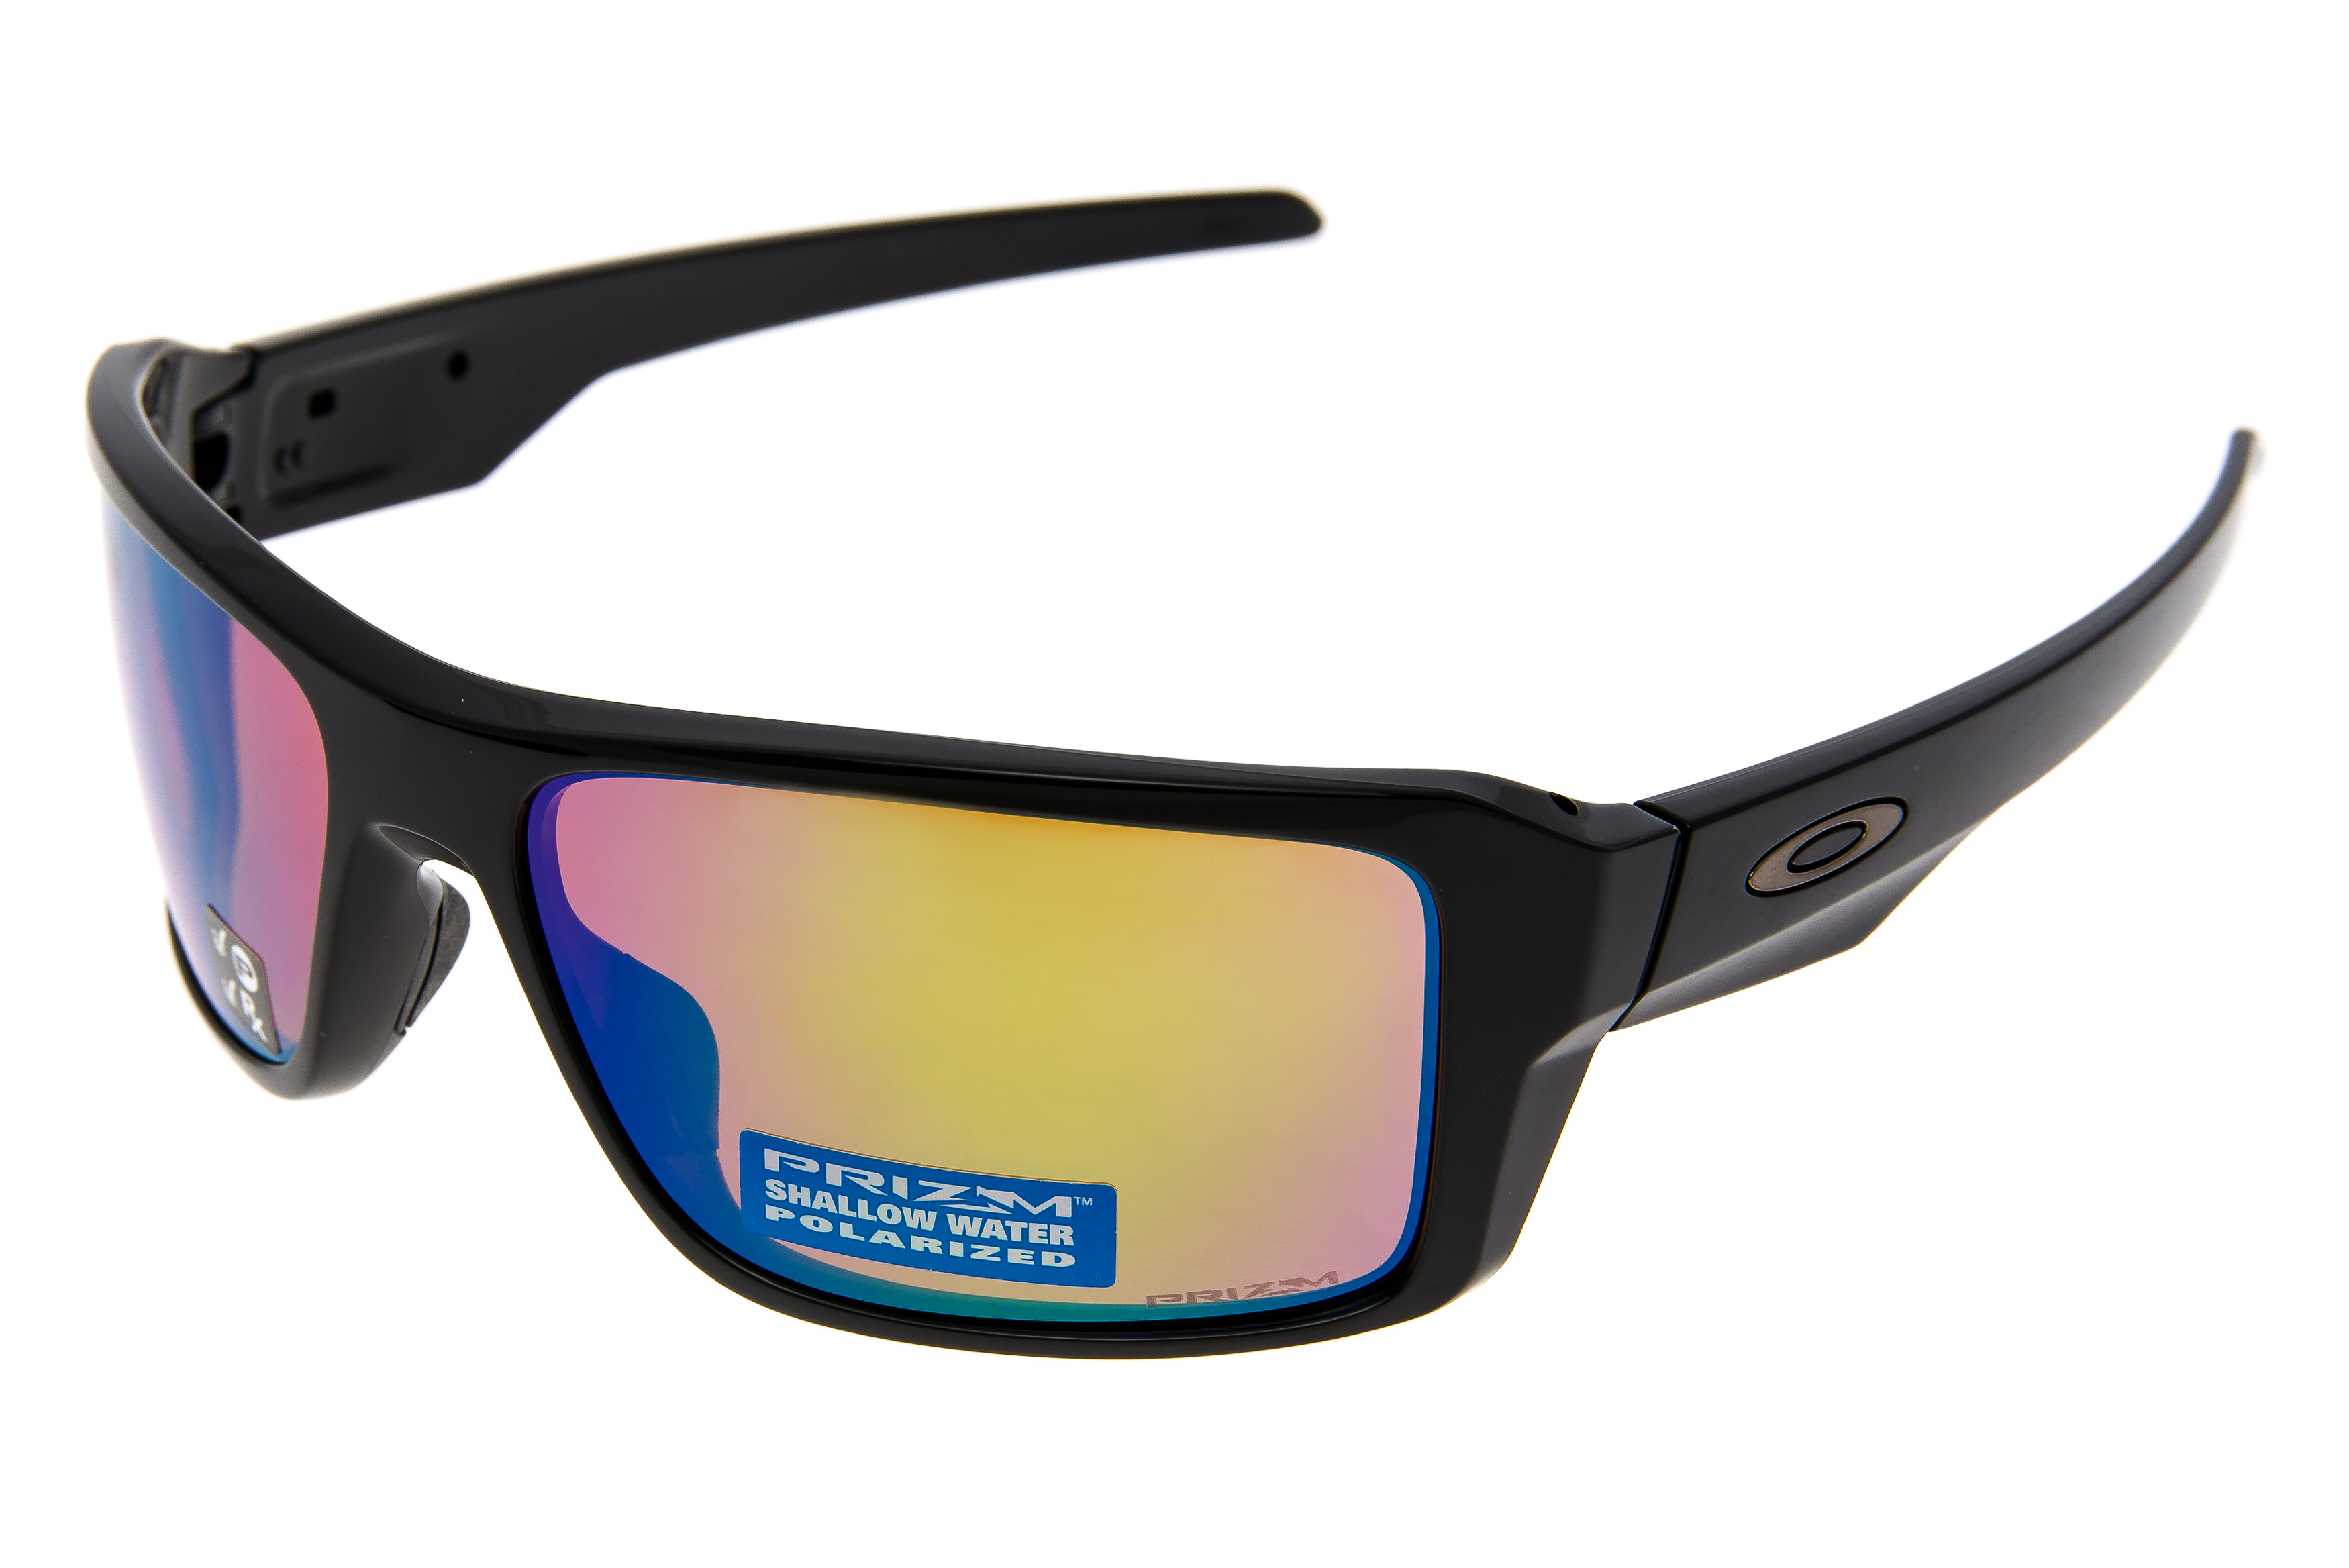 561a46faa3 Details about Oakley Double Edge Sunglasses Gloss Black Frame Prizm  Polarized Lens - Excellent